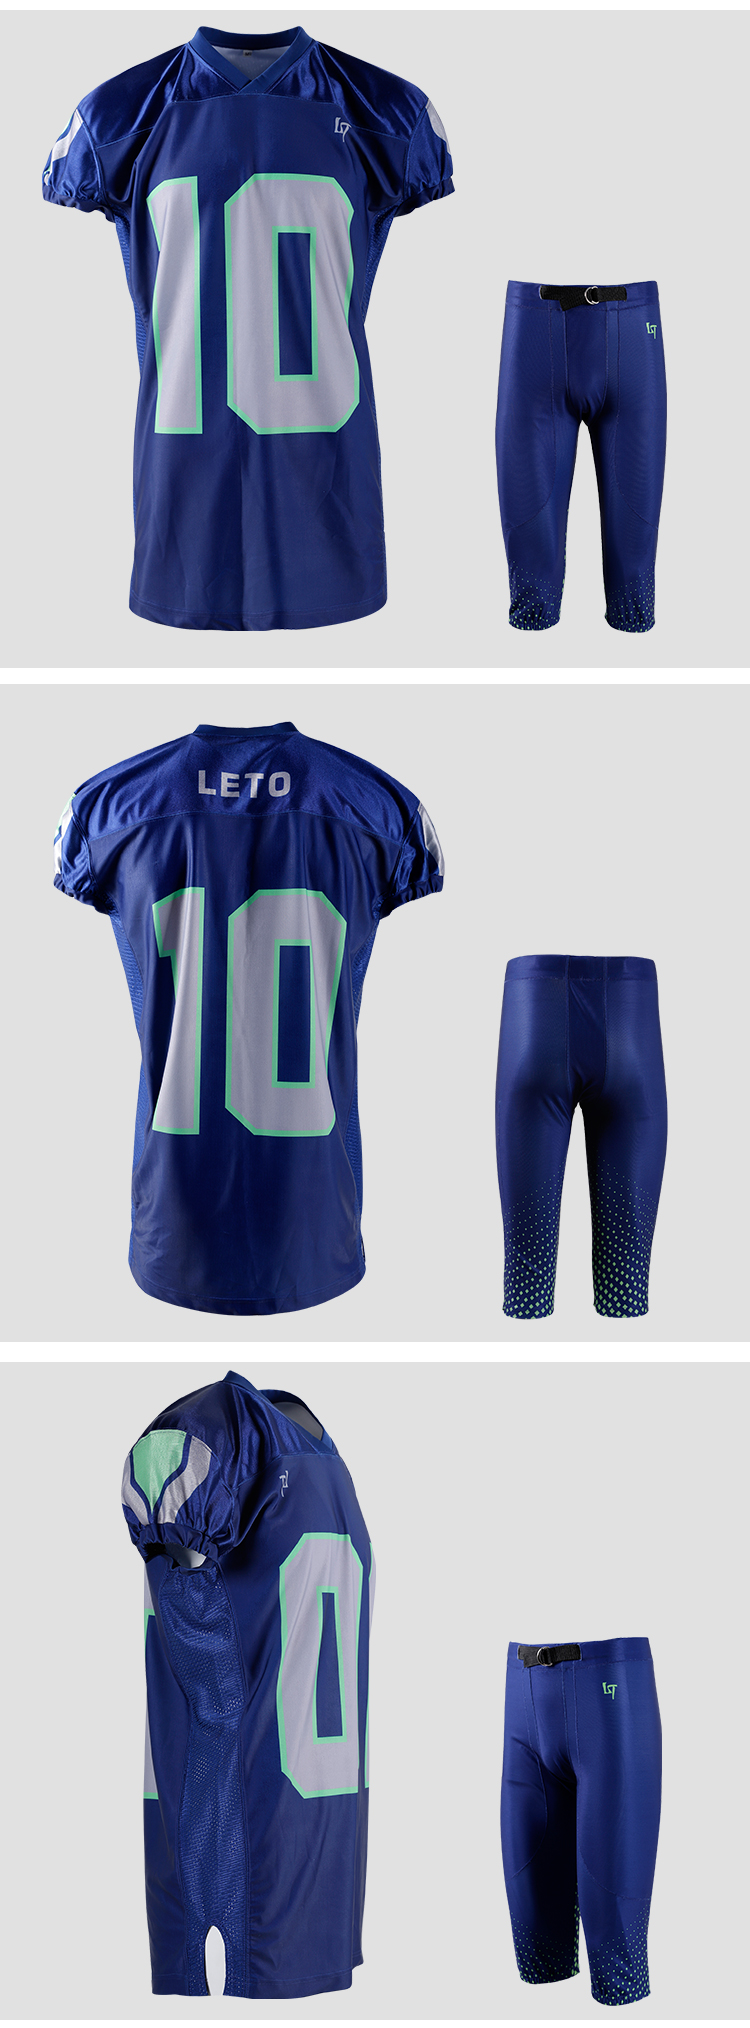 USA football jersey custom sublimation football jersey,American football Jersey